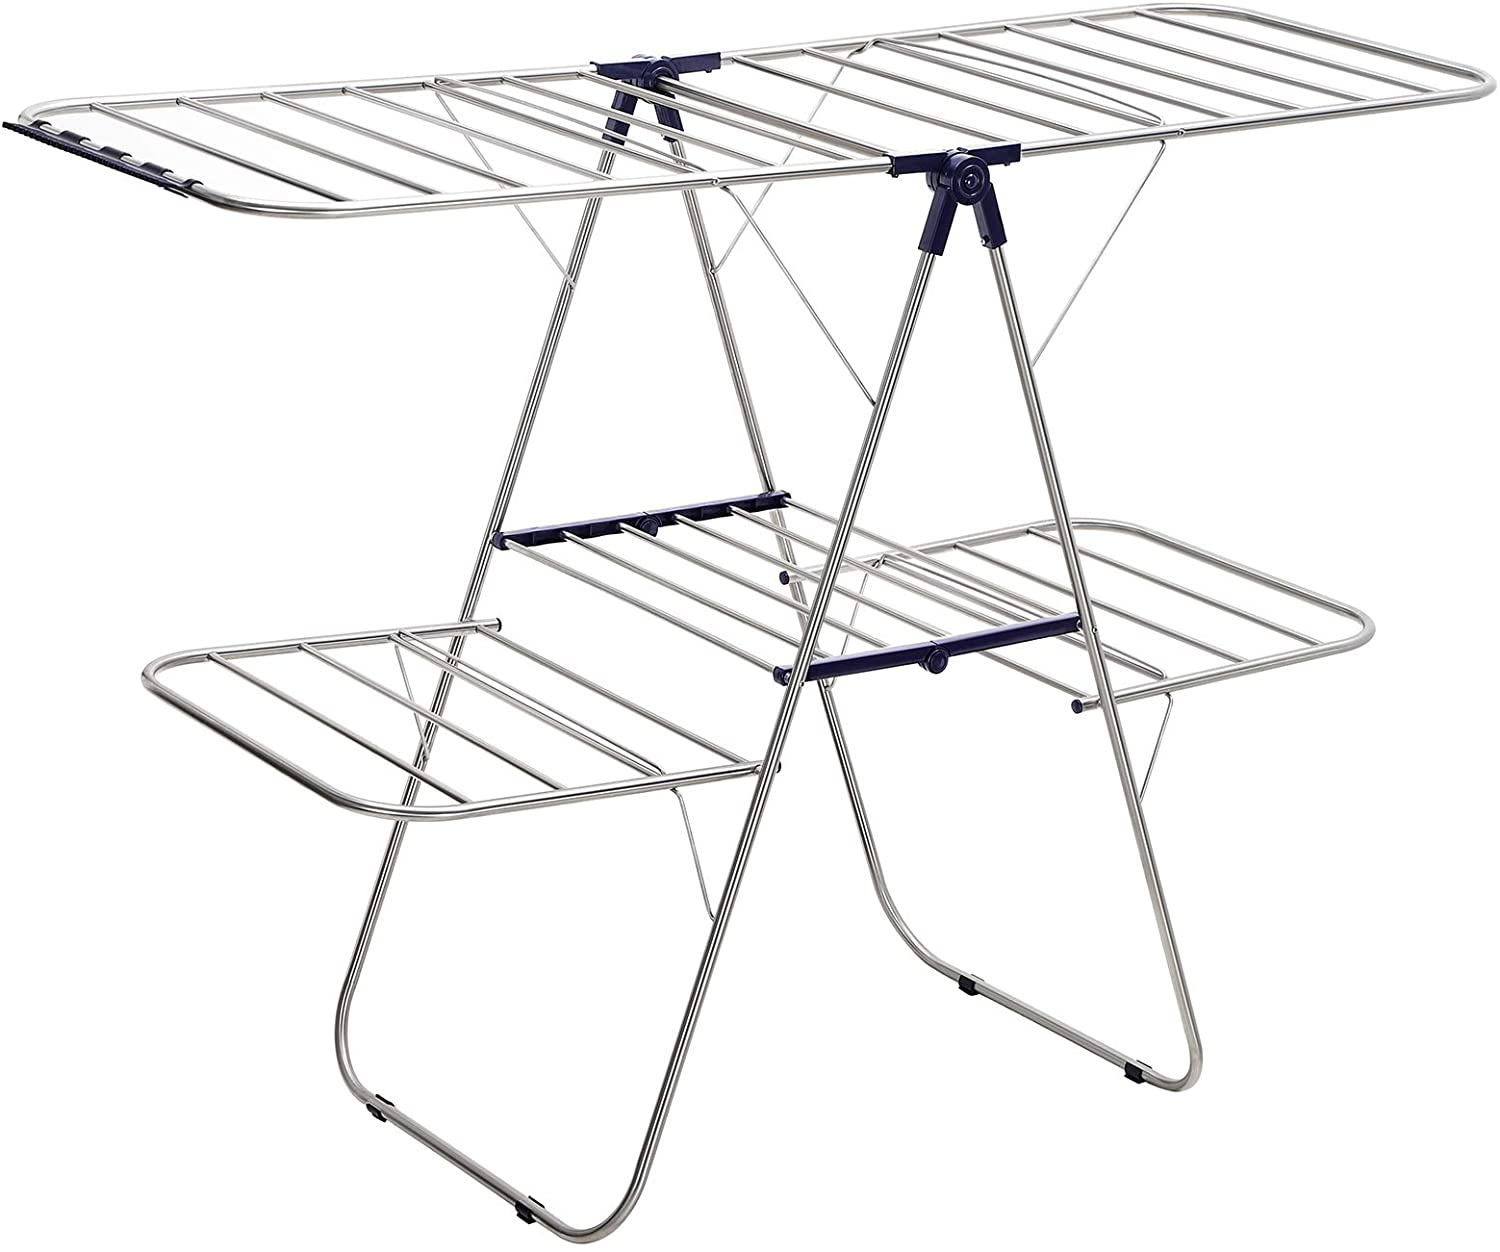 SONGMICS Clothes Drying Rack, Foldable 2-Level Airer